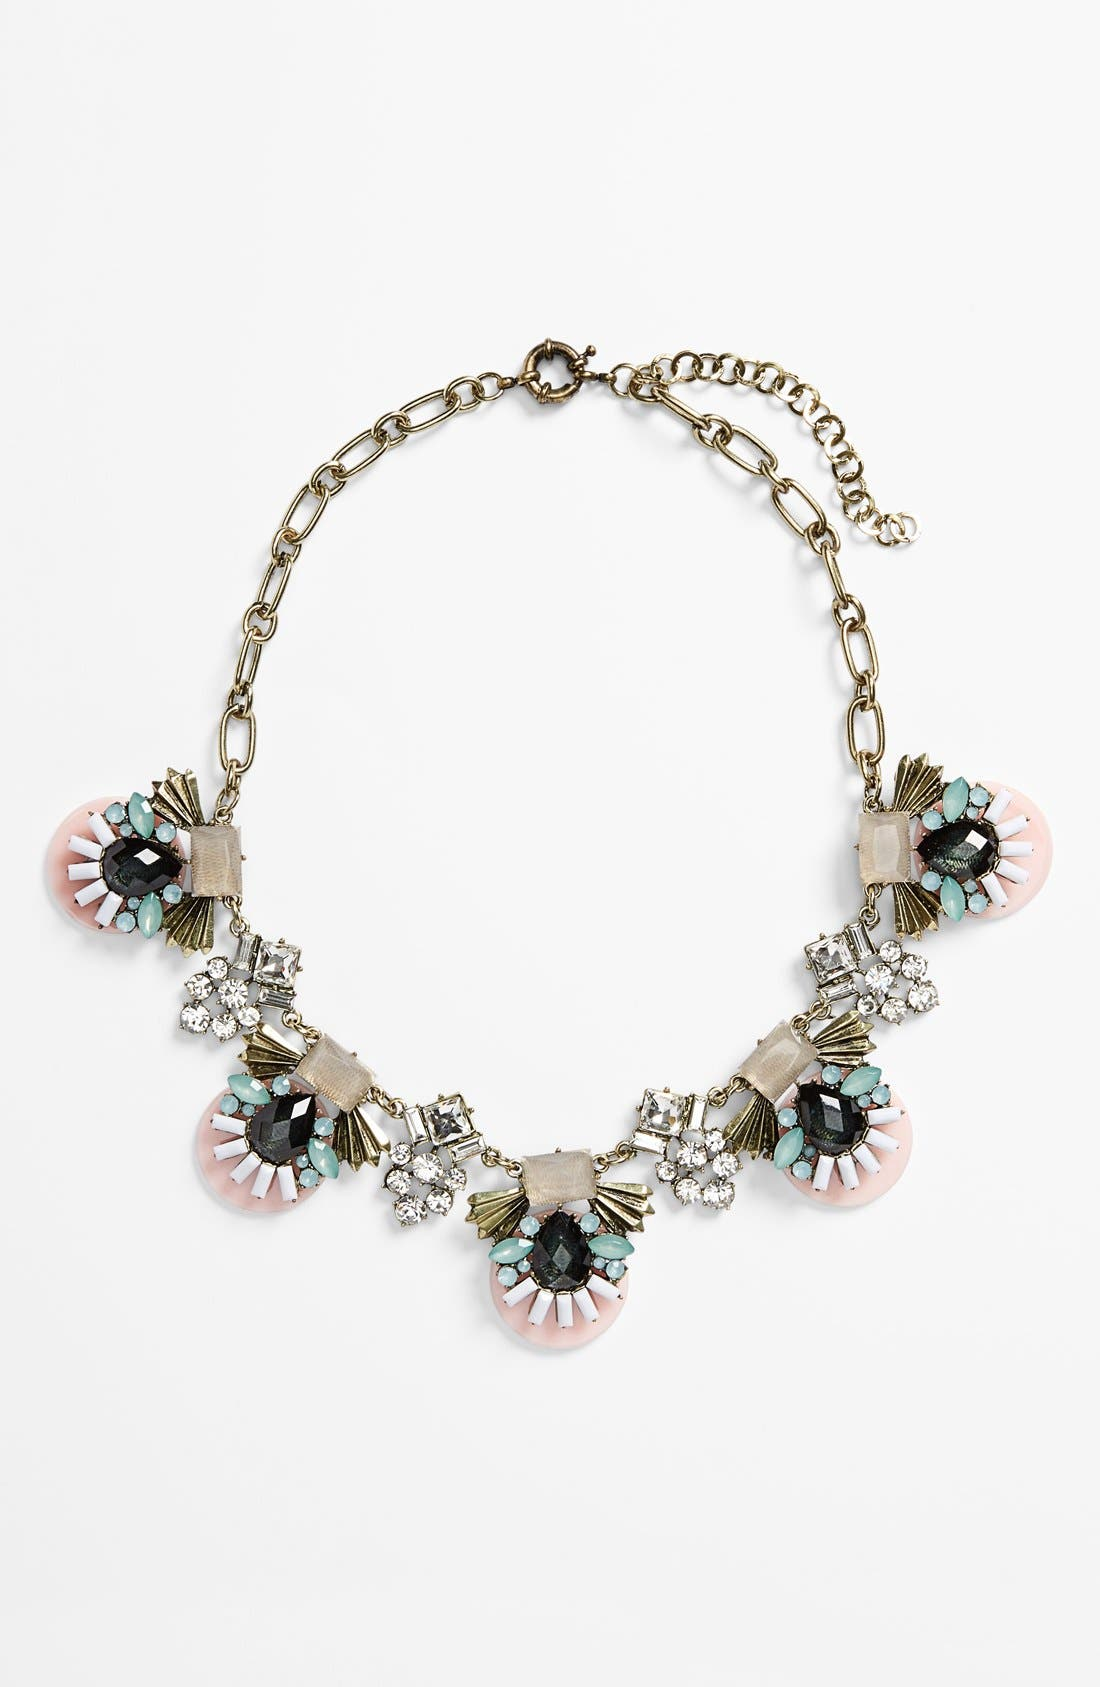 Main Image - Sole Society 'Deco' Statement Necklace